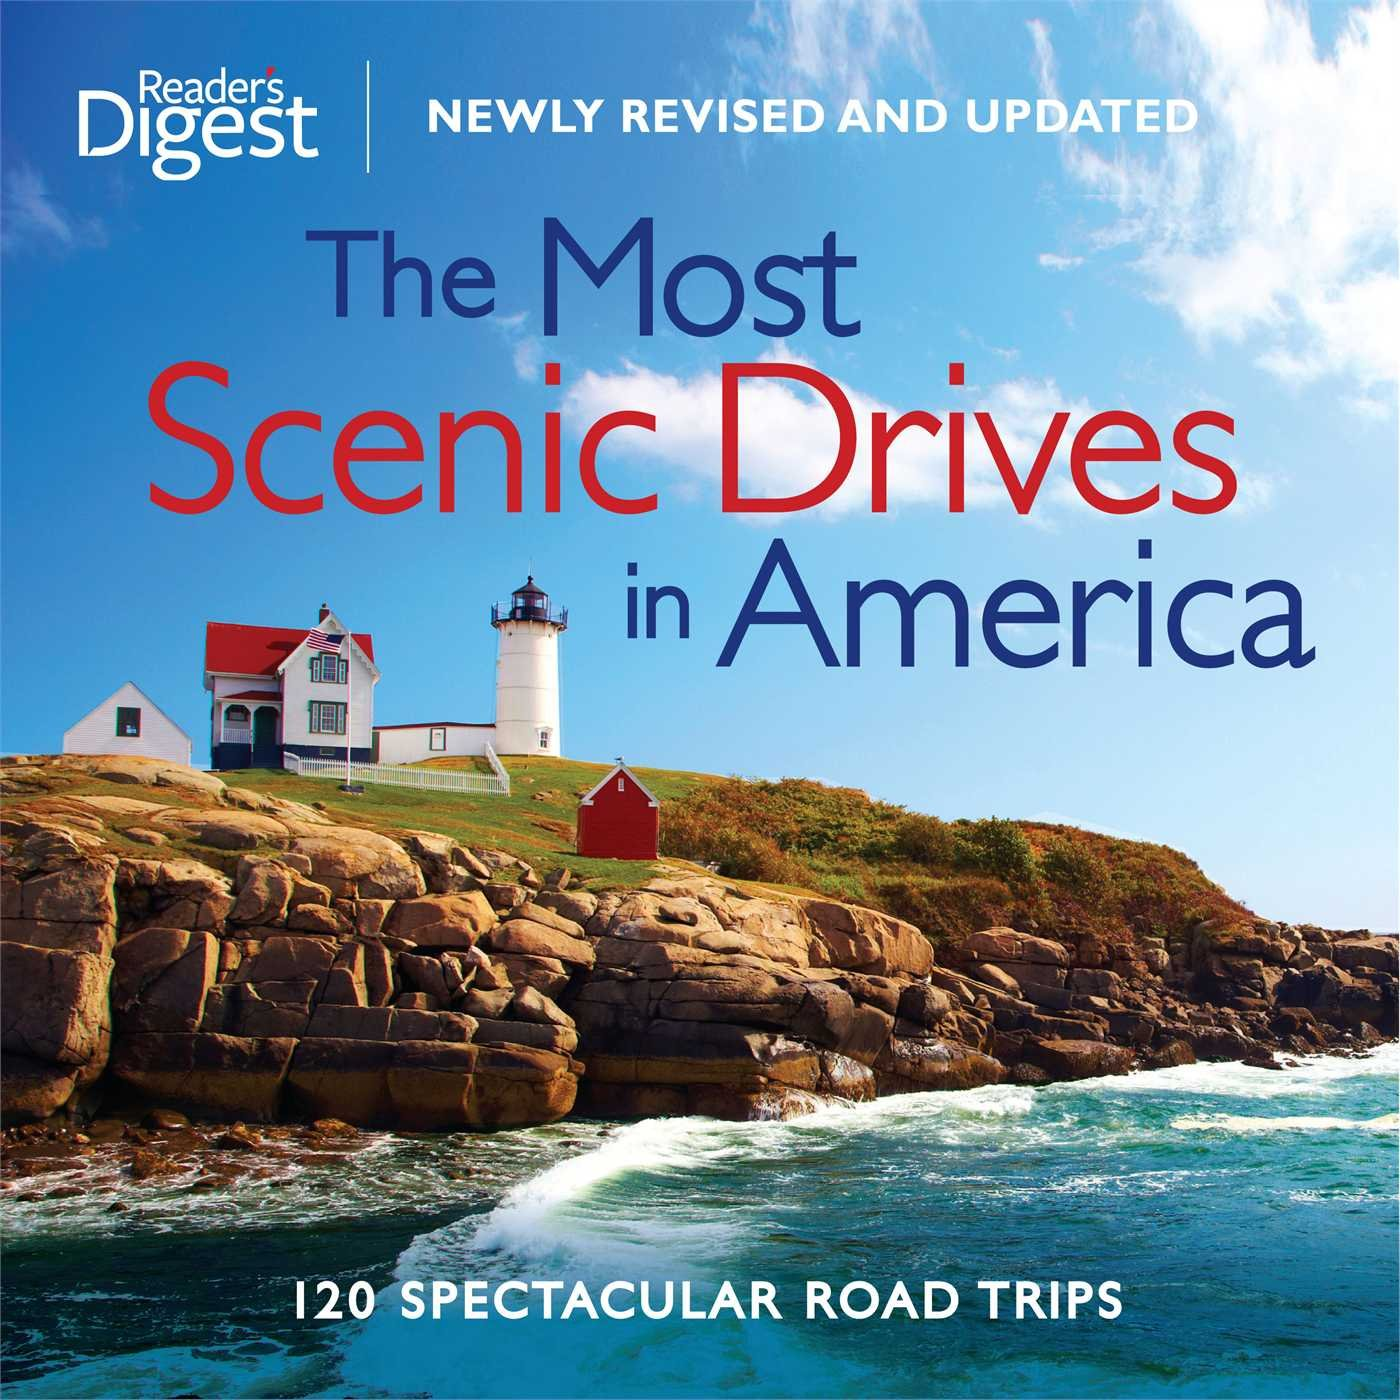 The Most Scenic Drives in America, Newly Revised and Updated: 120 Spectacular Road Trips by Reader's Digest